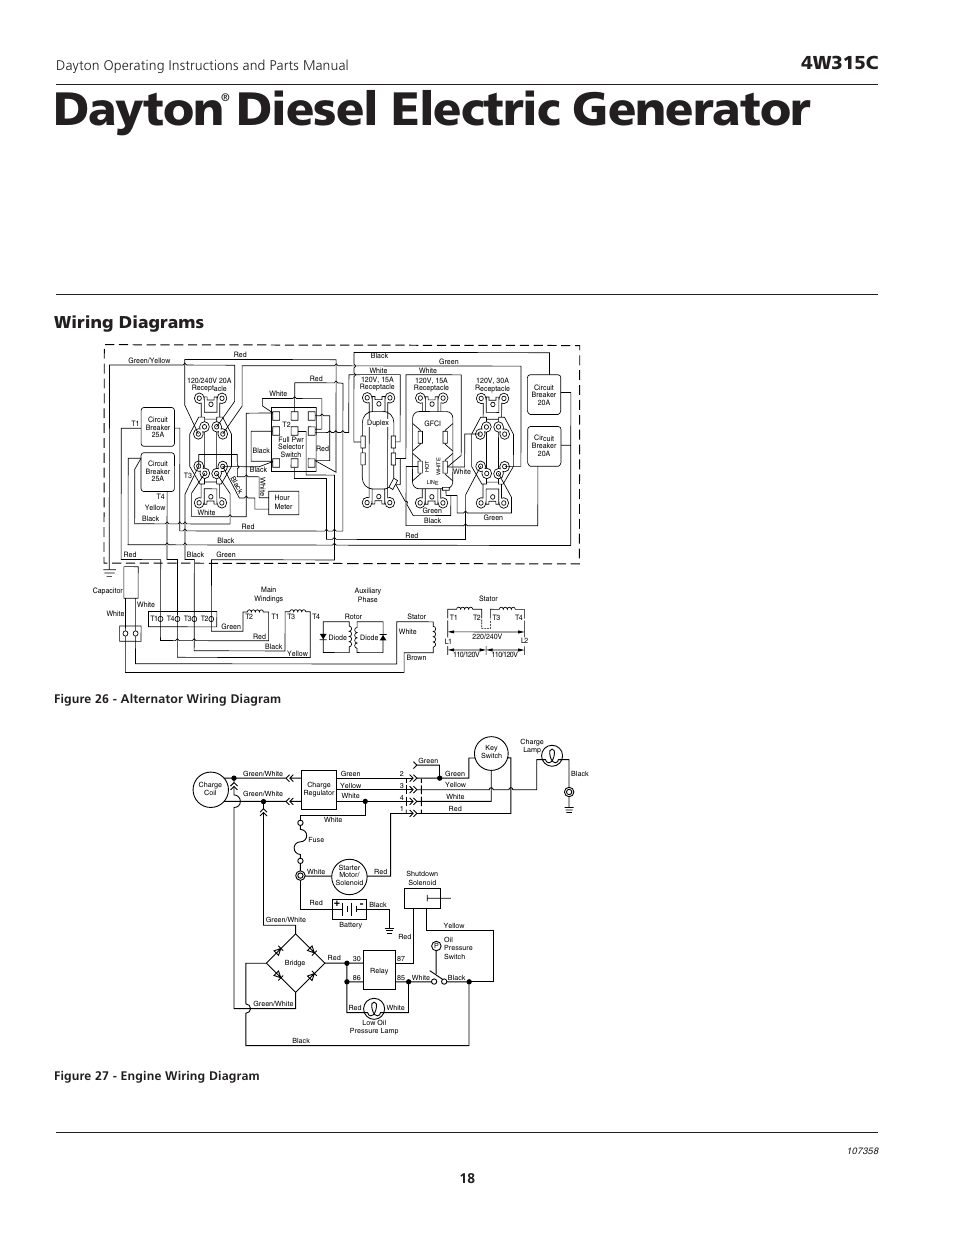 Dayton sel electric generator, 4w315c, Wiring diagrams ... on